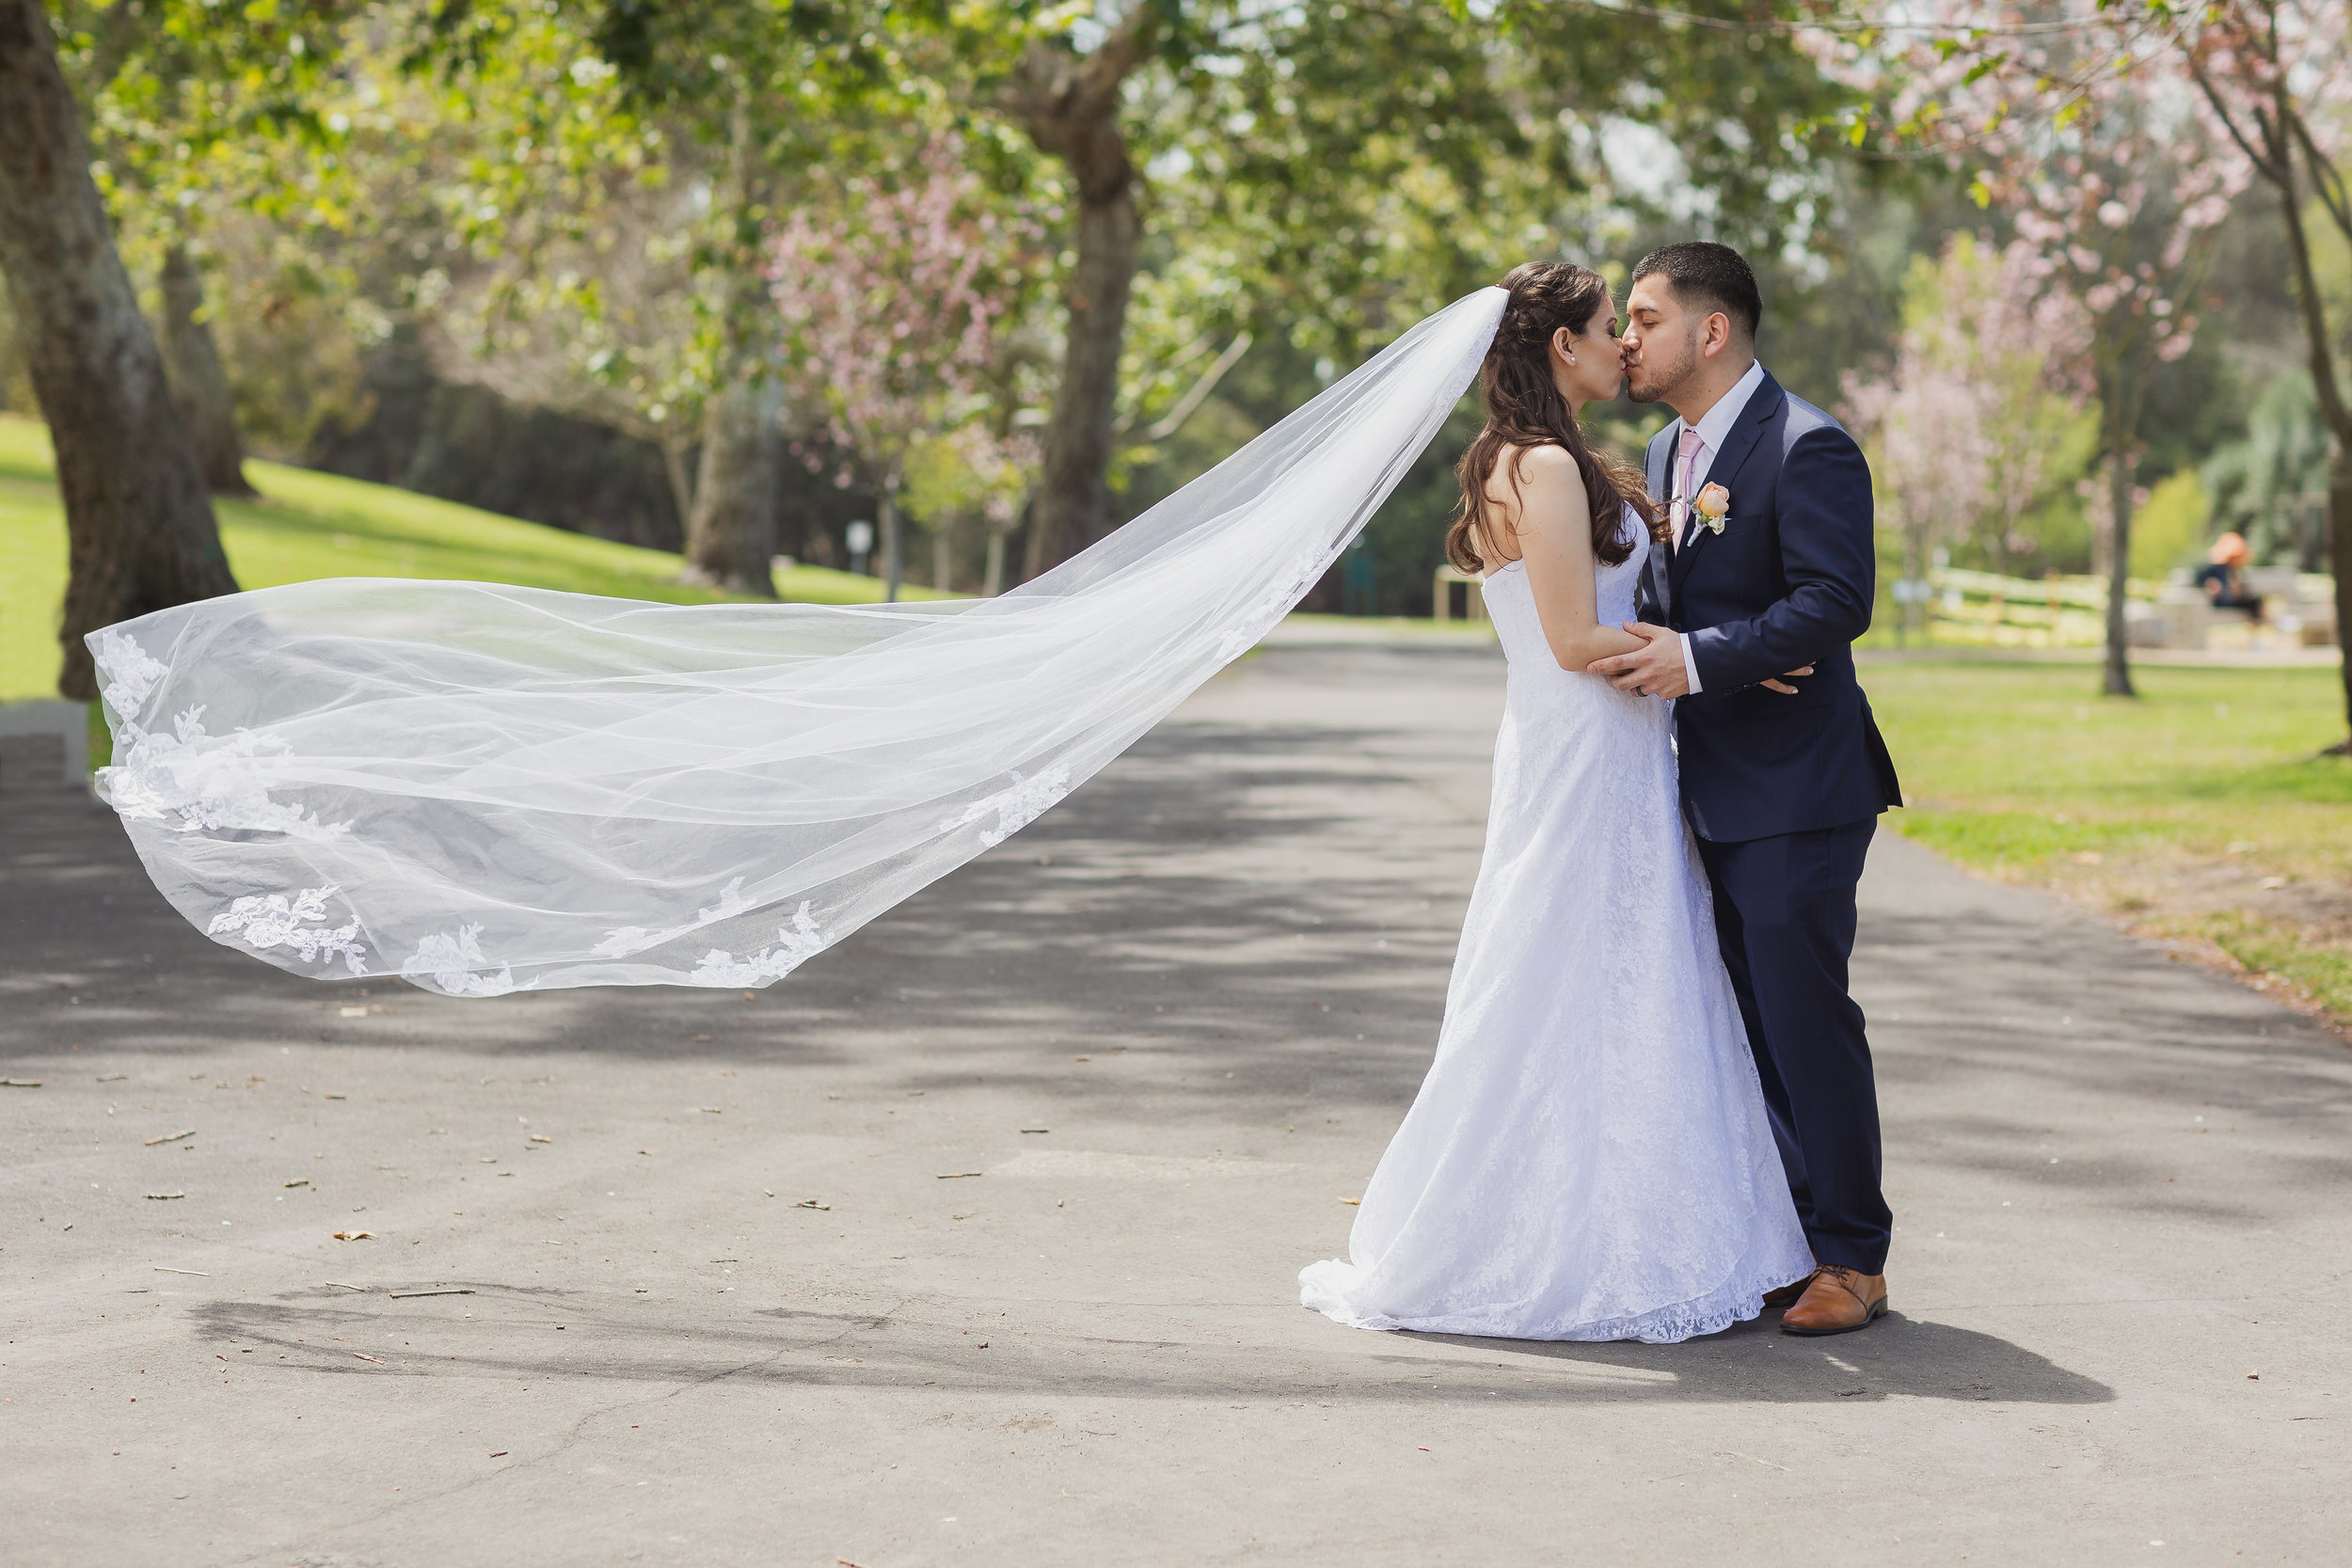 Bride and groom kissing with veil blowing in the wind.jpg